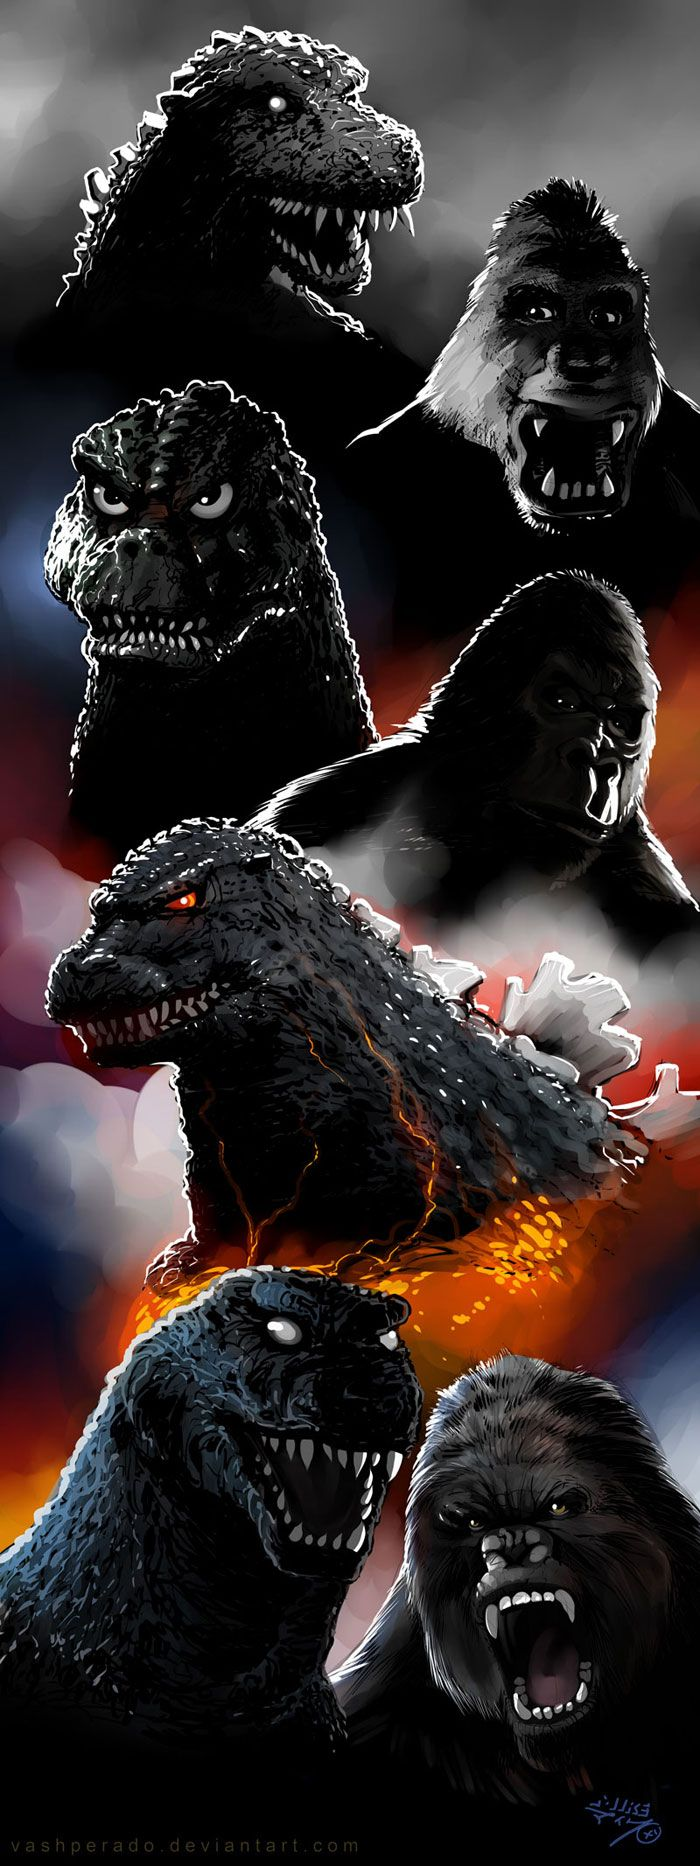 Evolution of Godzilla and King Kong fan illustration by Vashperado